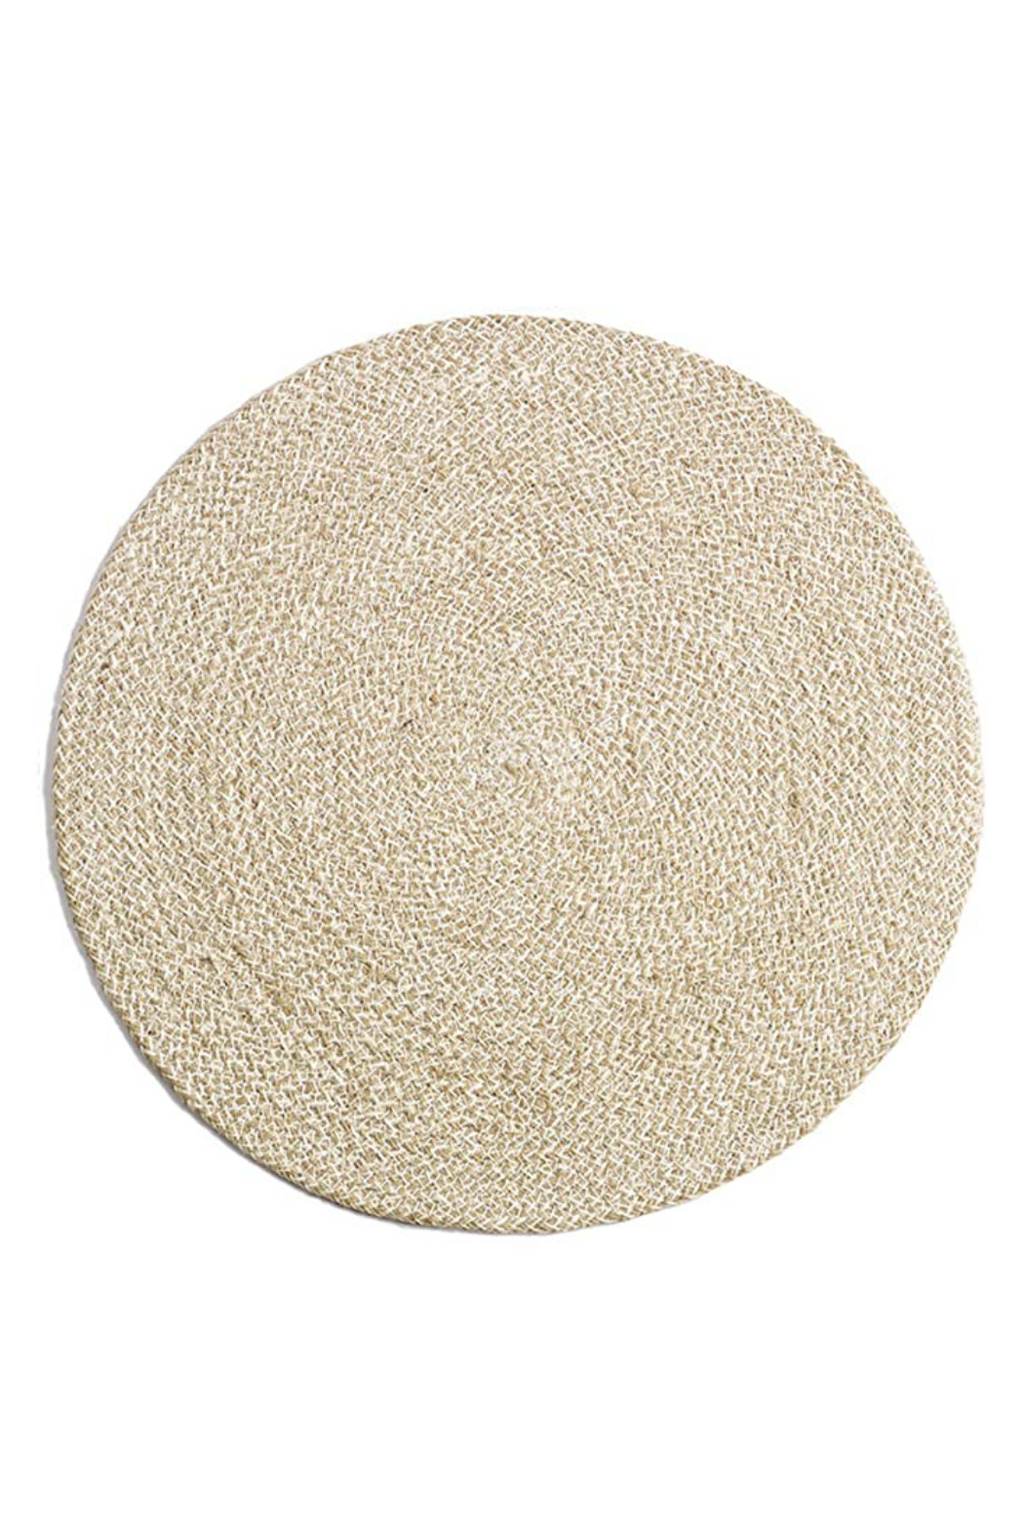 Texture by Design Design Ideas Melia Placemat Sand